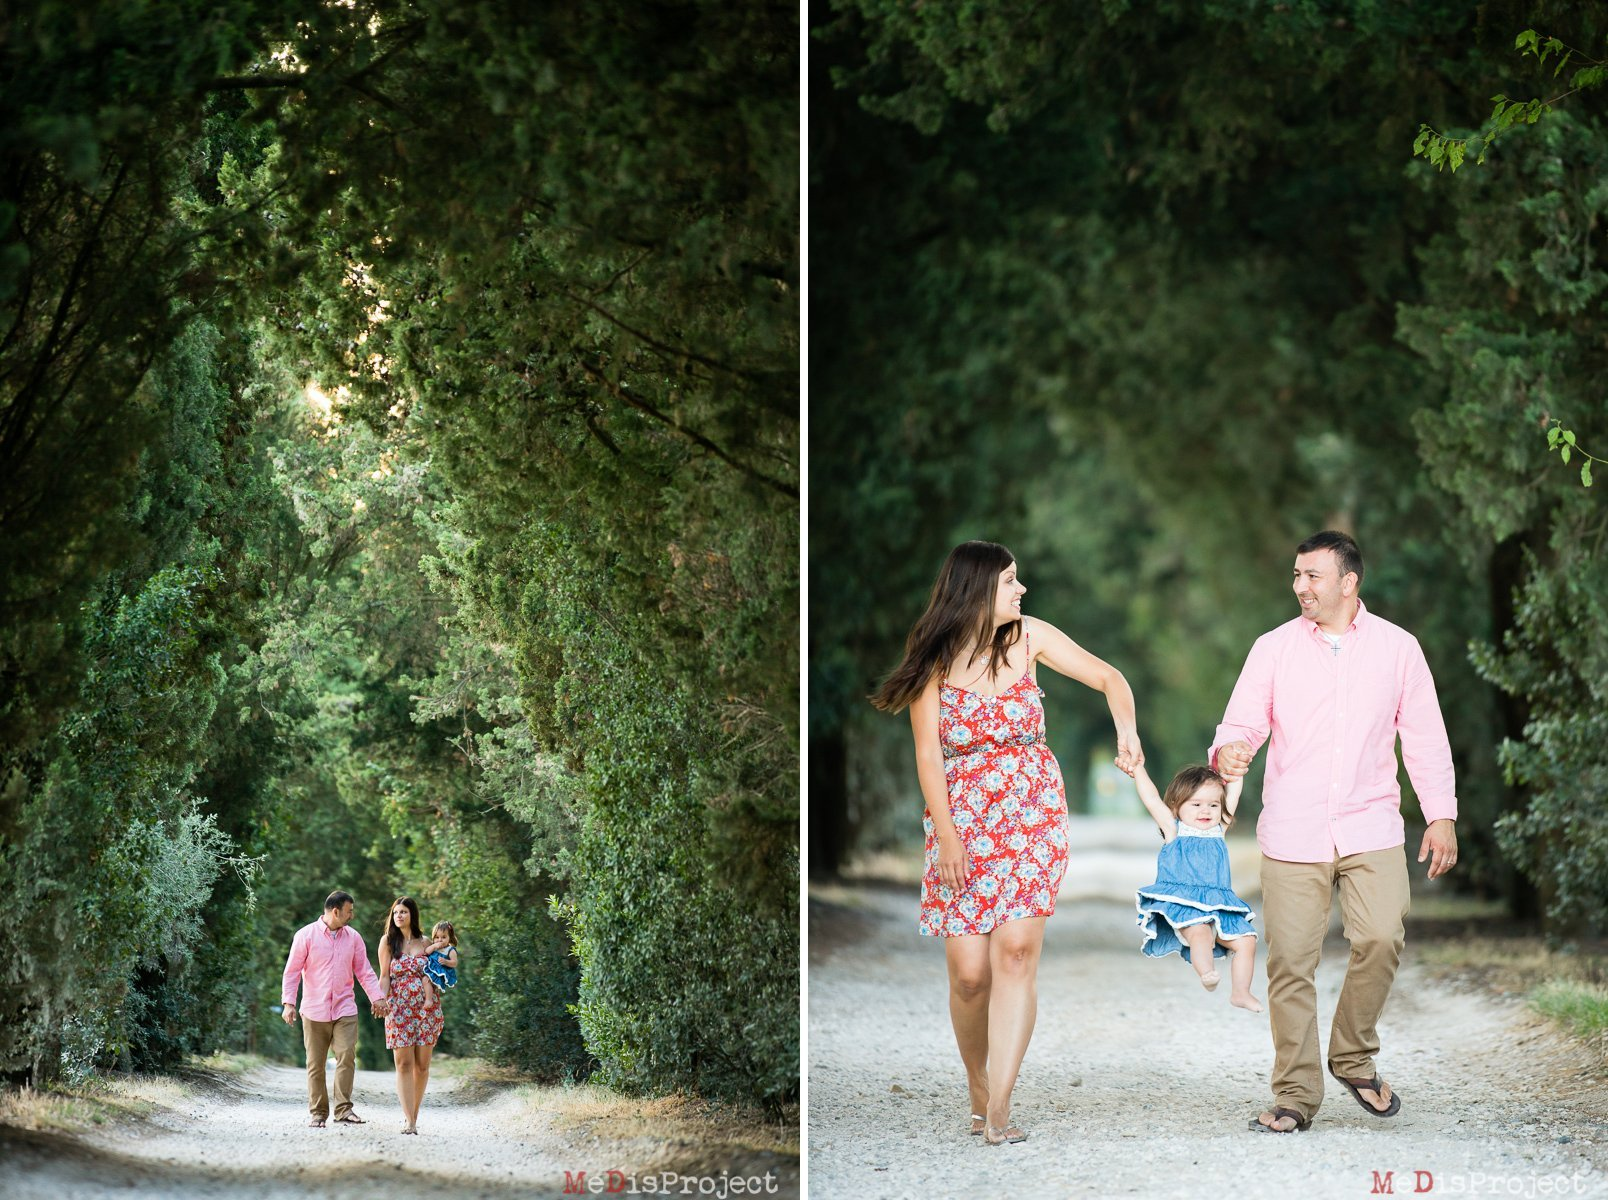 medisproject_family_photography_in_tuscany_022